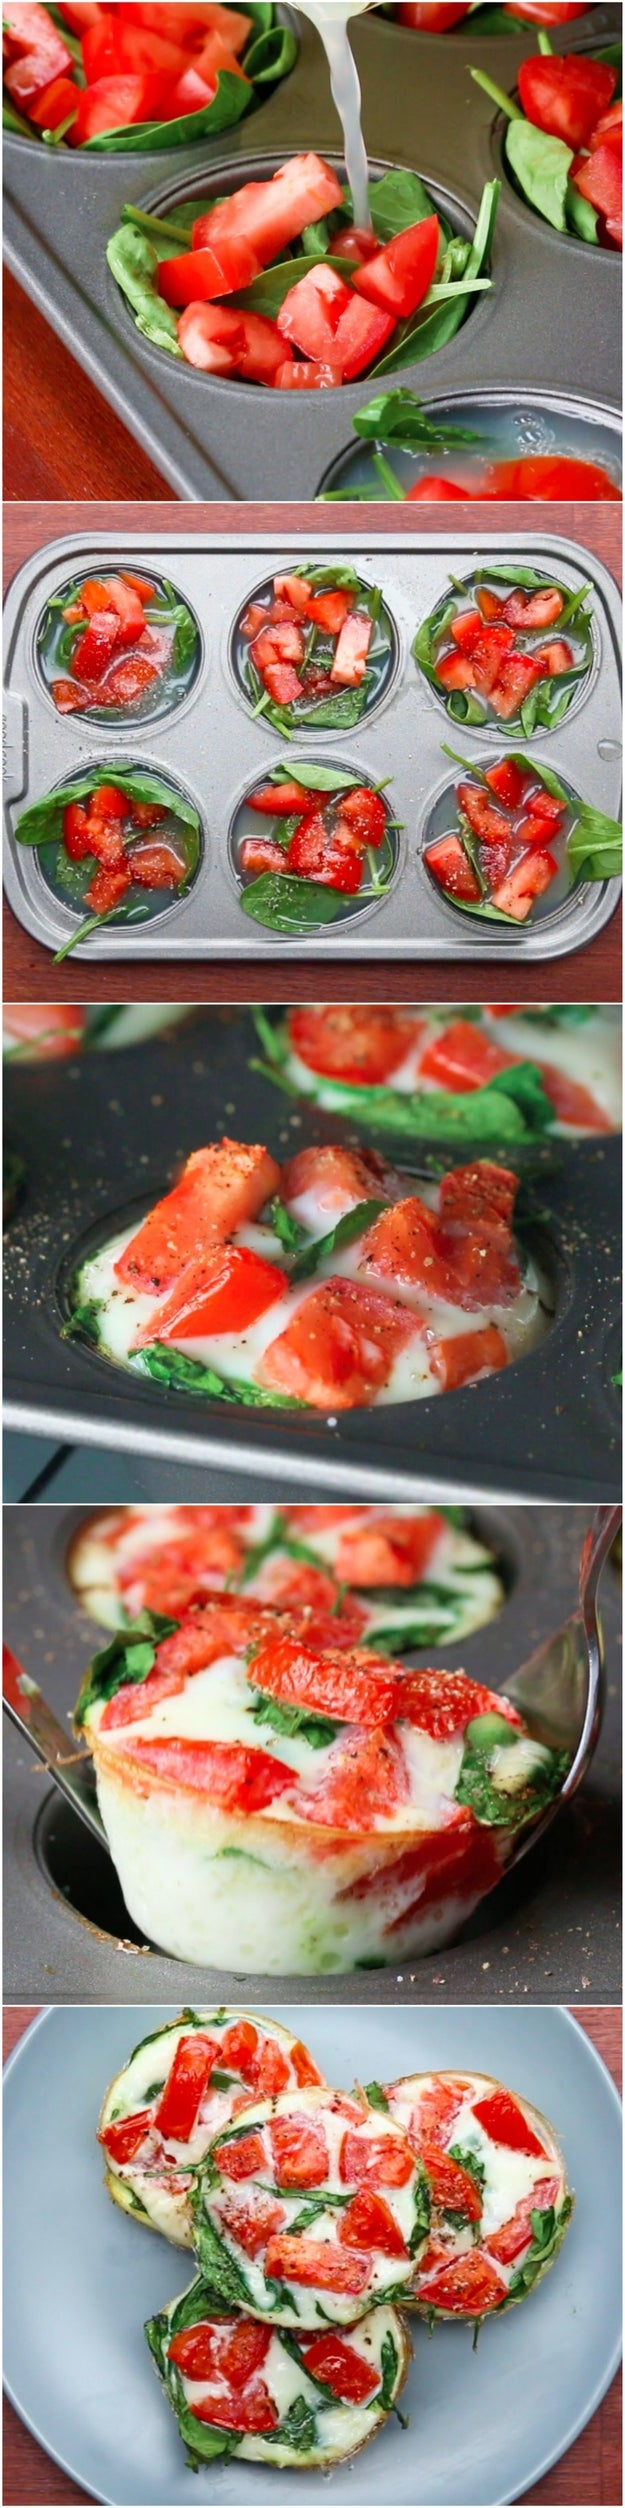 Healthy Egg White Breakfast Cups